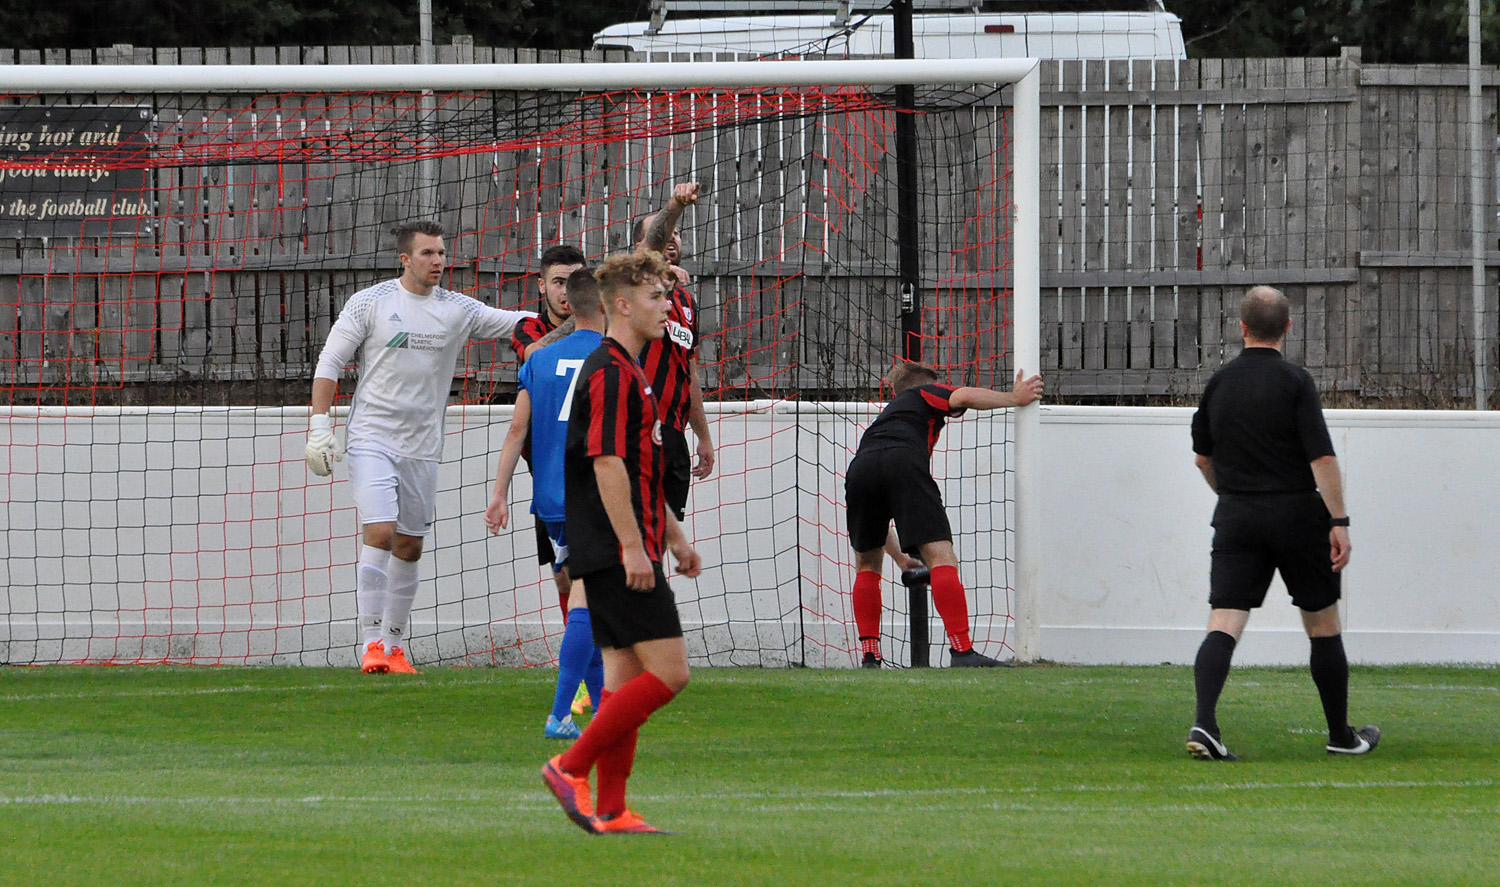 coggeshall-5-1-stanway-rovers-01-08-17-18